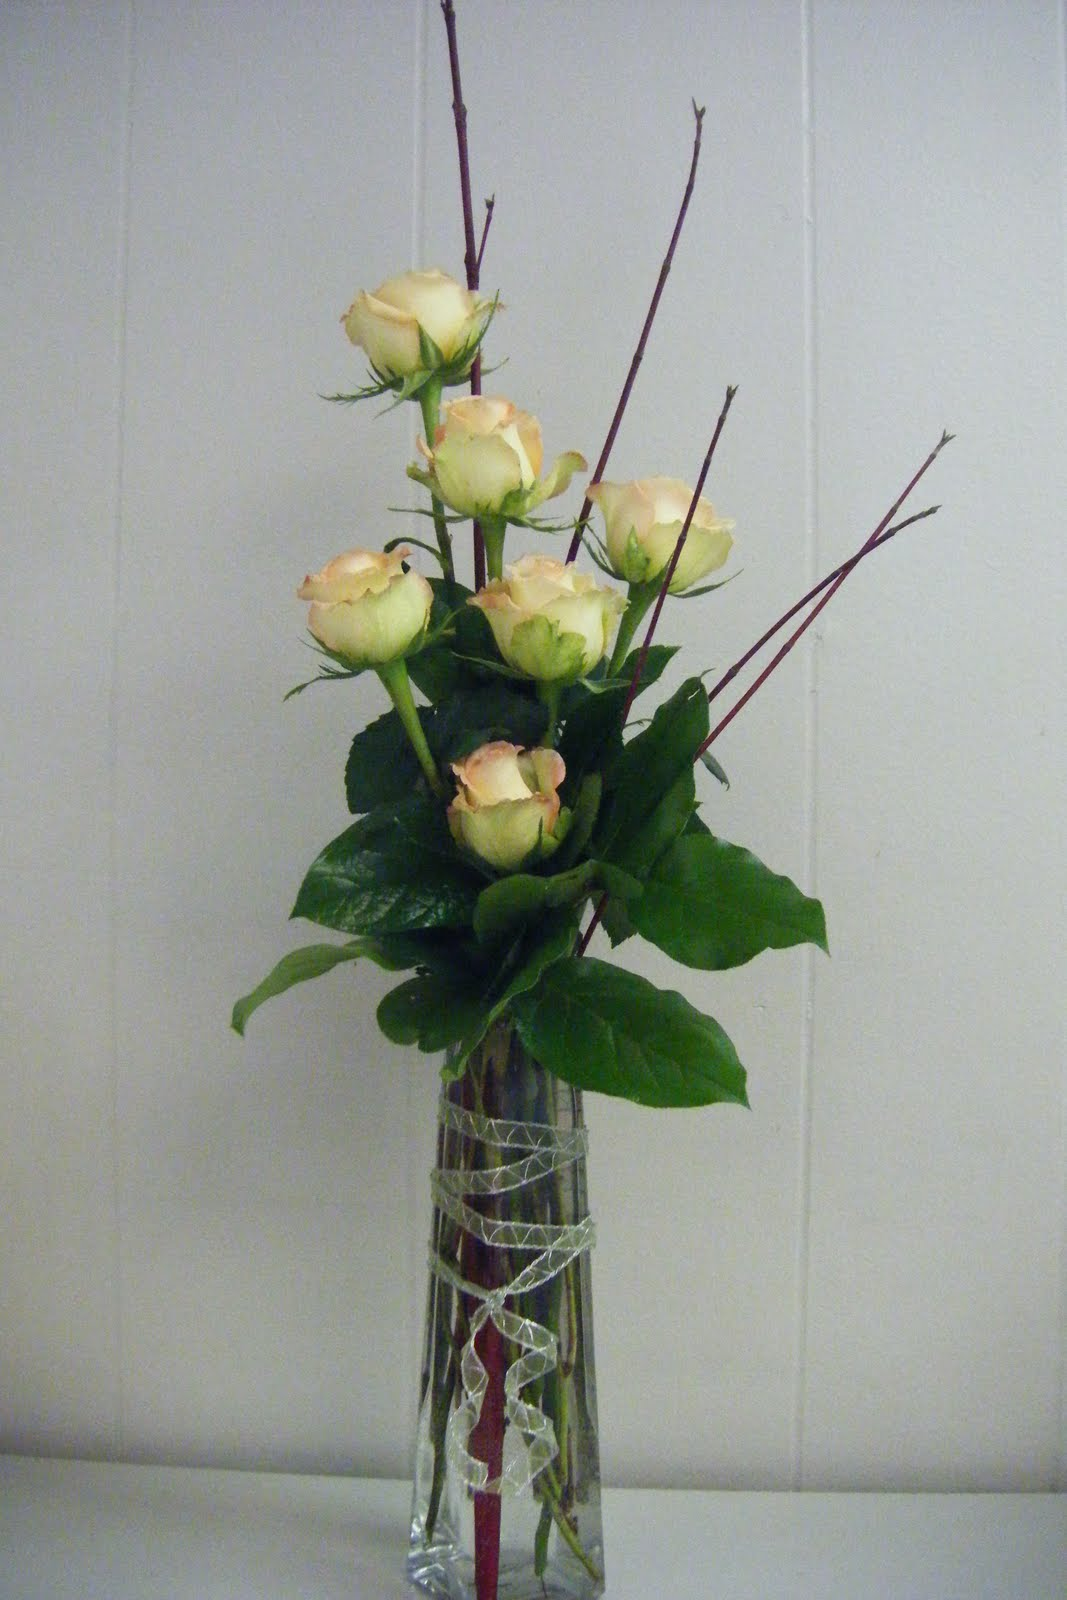 Wholesale Flowers and Supplies - Affordable Contemporary Floral